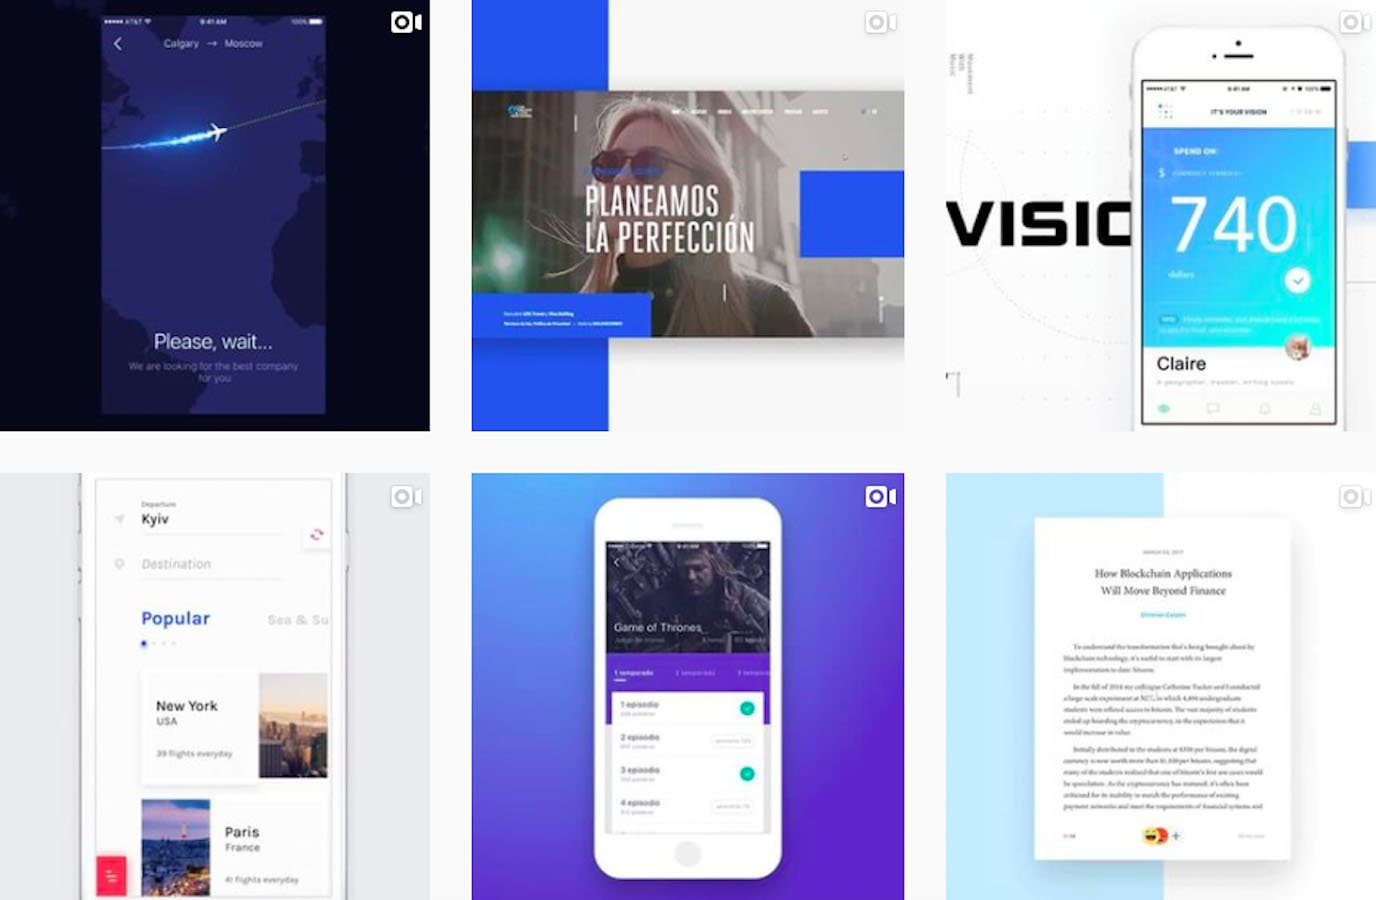 Web Design Inspiration: 110+ Accounts On Instagram and 10+ Best UX & Web Design Books in 2020 - wittydigital